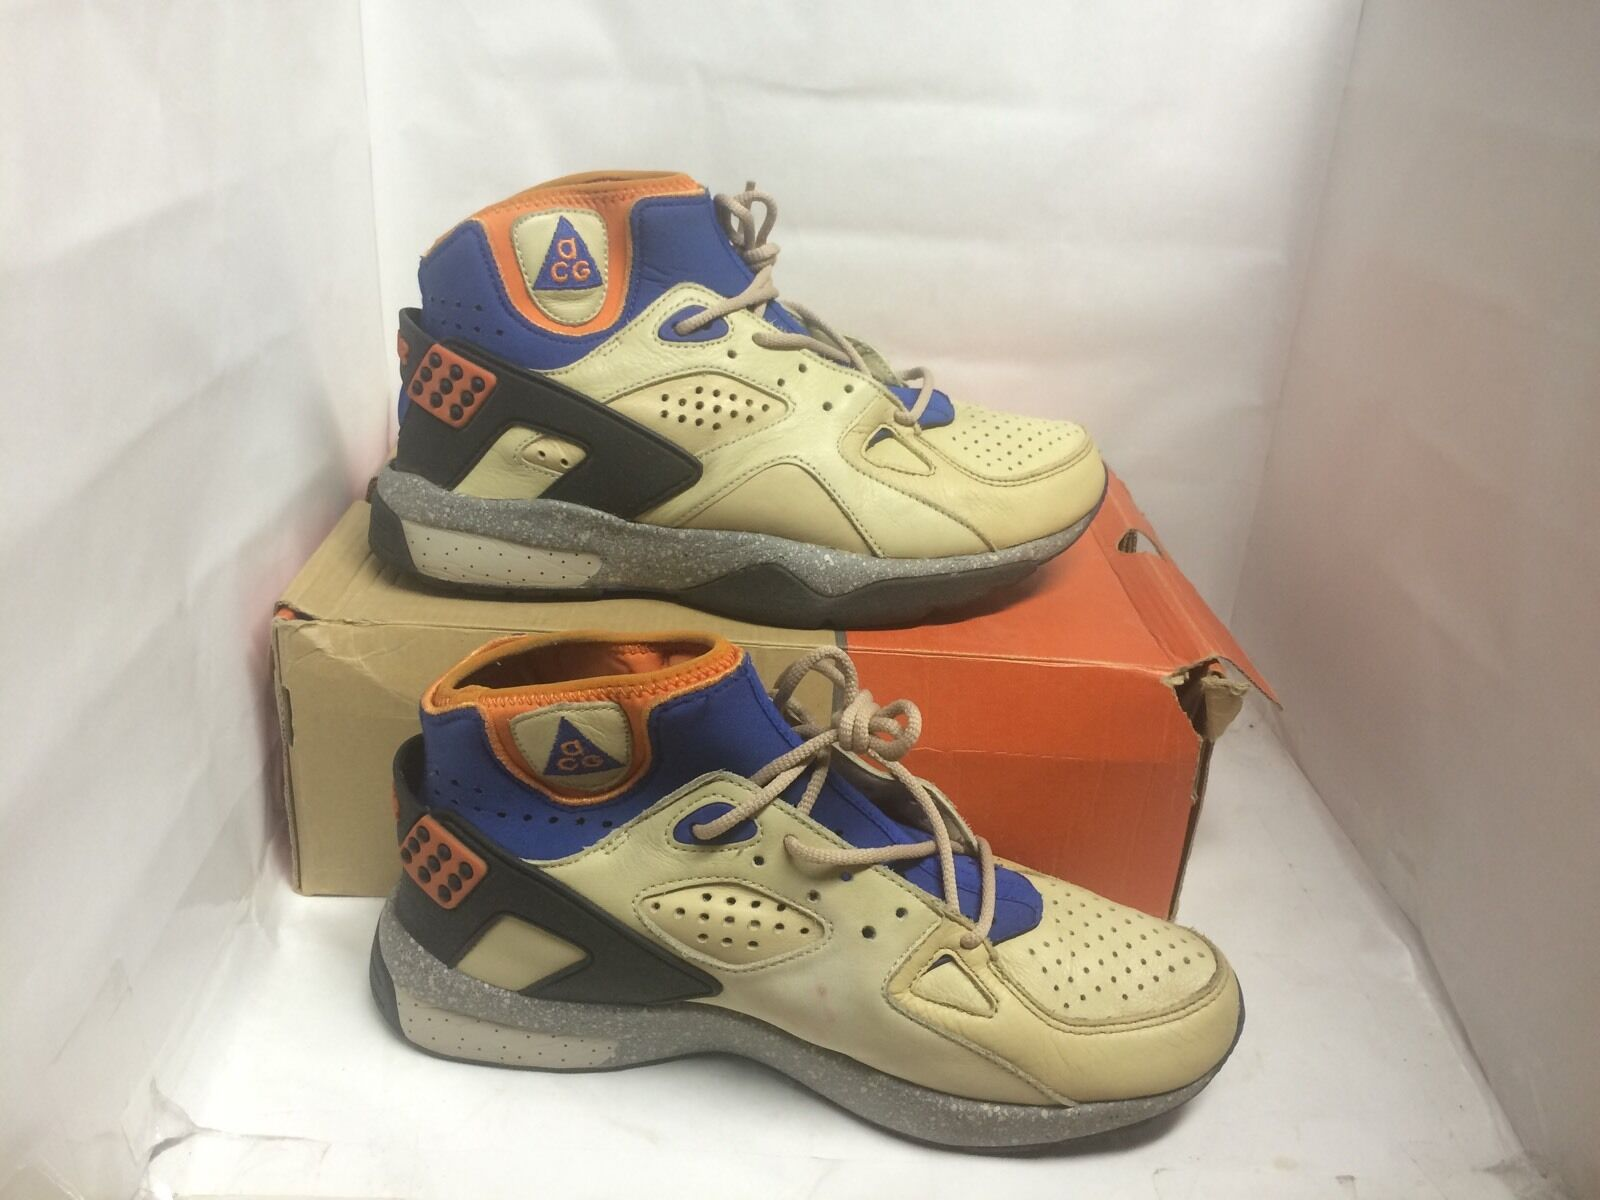 Nike Air Mowabb ACG Used Size 9 (2004) Supreme